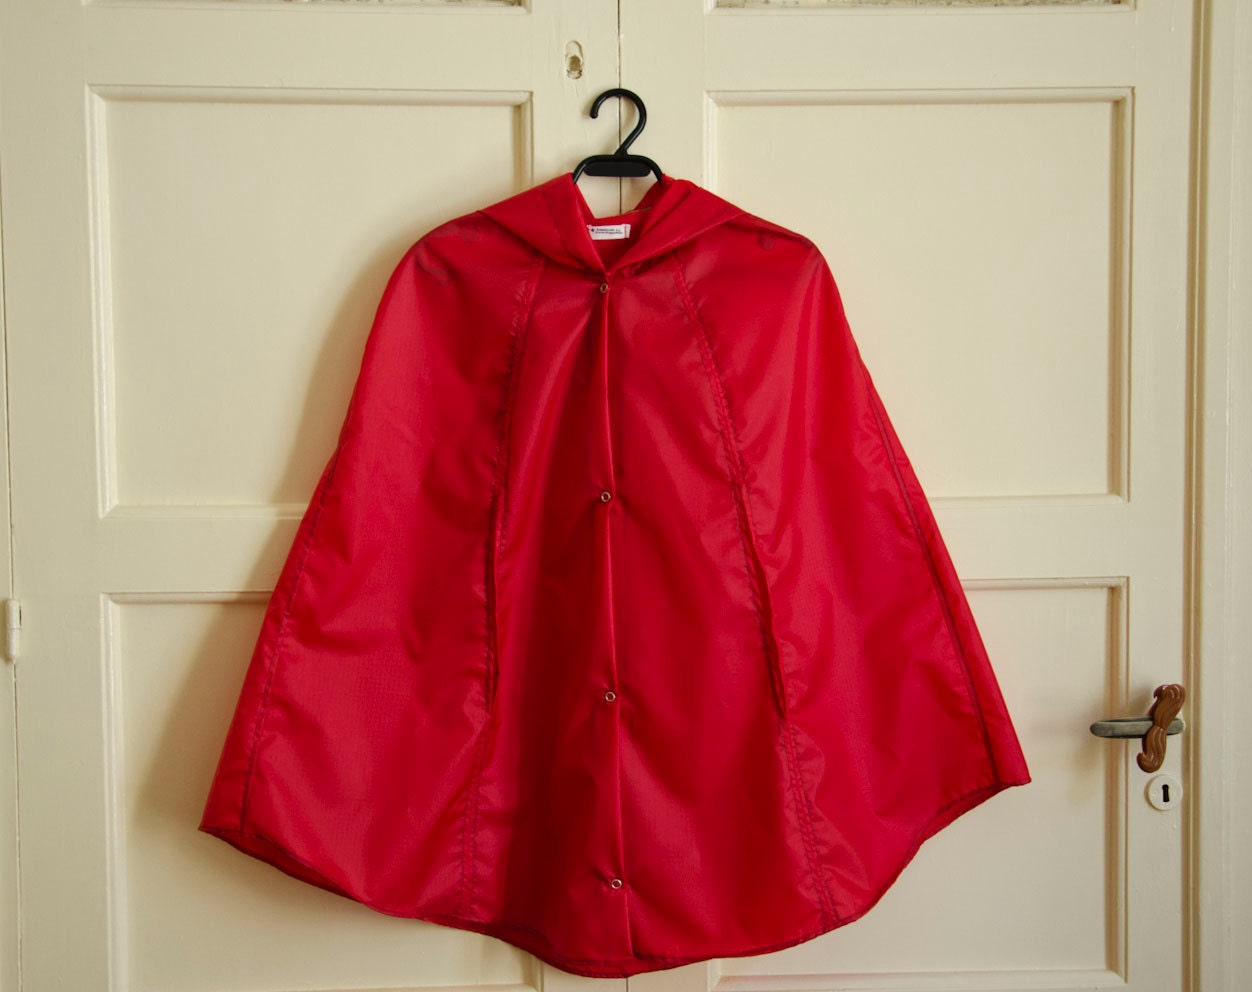 Red Raincape, Vintage Inspired Cape with Hood, Waterproof, Unisex Rain Jacket - karmologyclinic